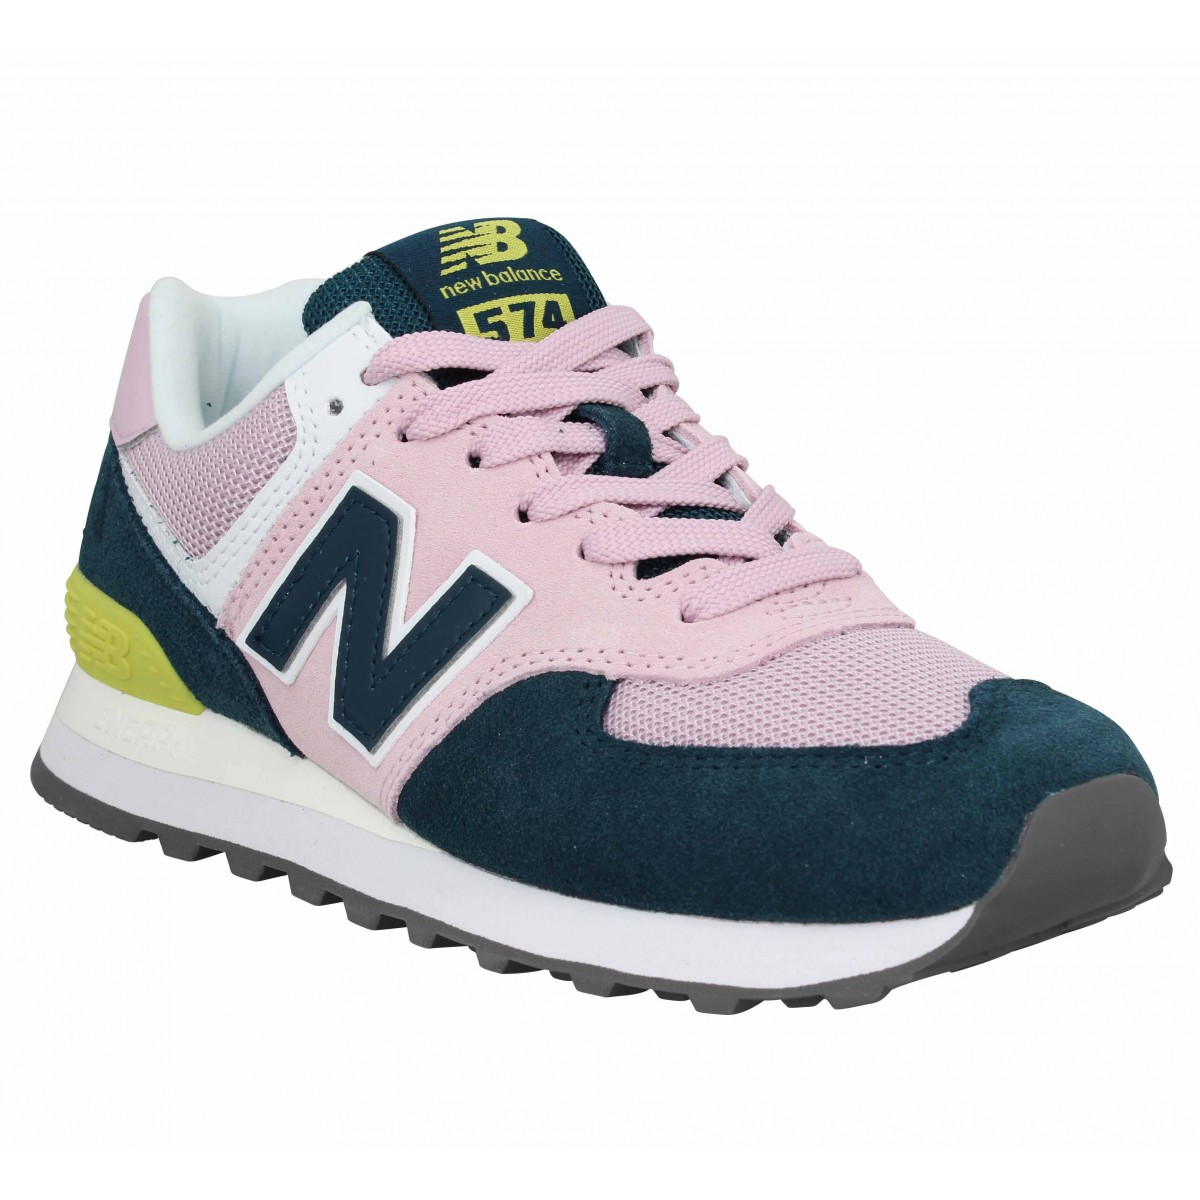 Los Angeles 2d595 a1f7b NEW BALANCE 574 velours toile Femme Rose Bleu